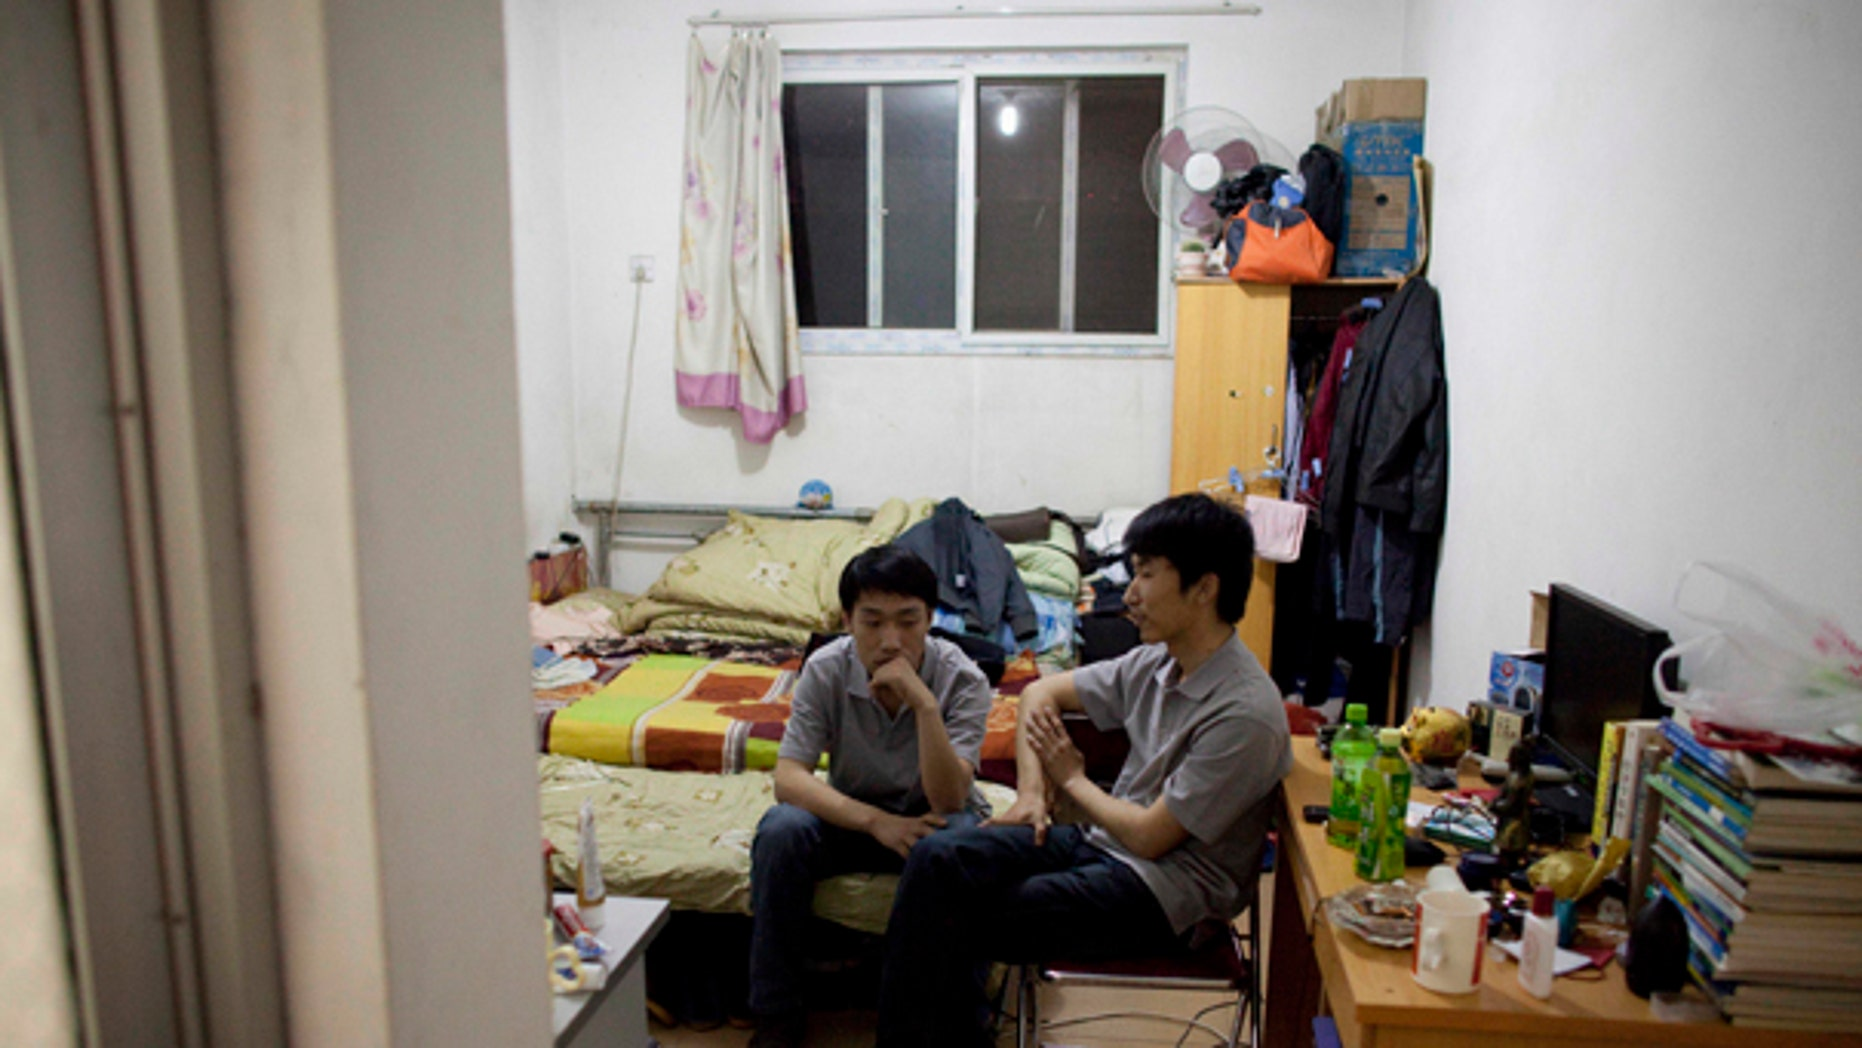 May 11: 24-year-old engineer graduates Liu Jun and Li Zhenyang rest in their rented room at Tang Jialing village where tens of hundreds of young educated Chinese crowd in shared rooms in Beijing, China. (AP)